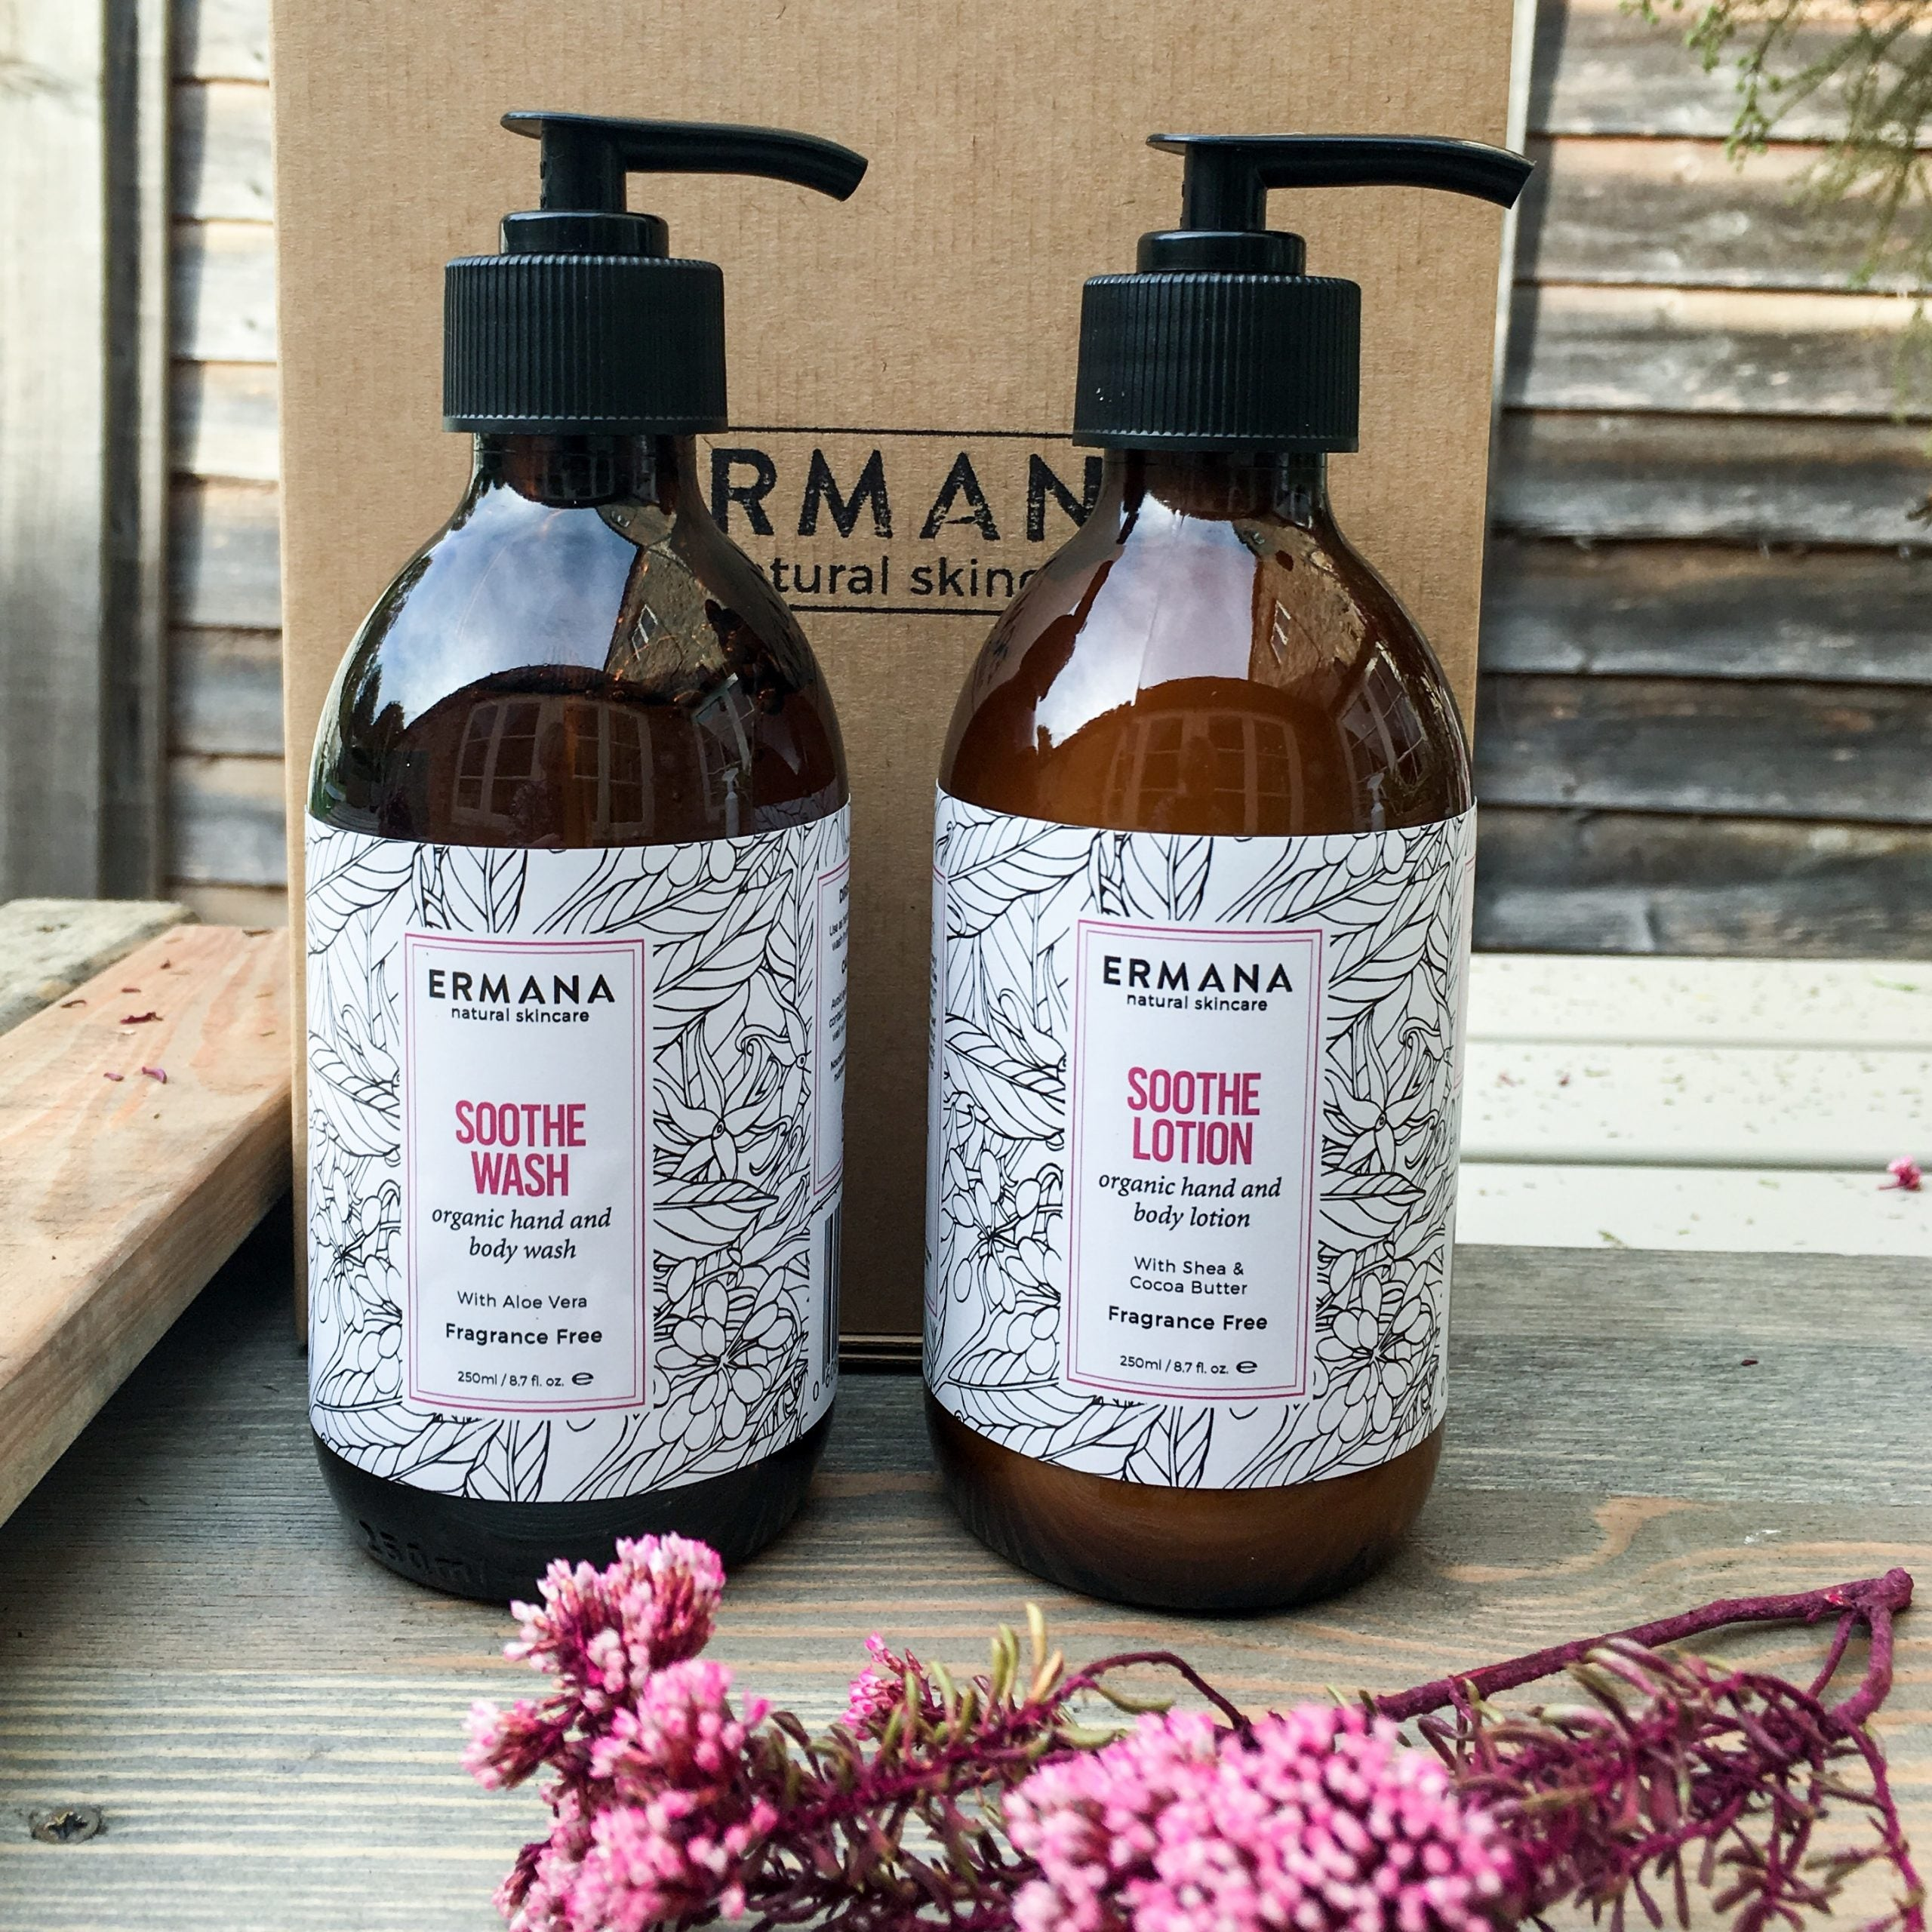 Soothe Organic Hand Body Gift Set Hand Blended Natural Skincare Made In Uk